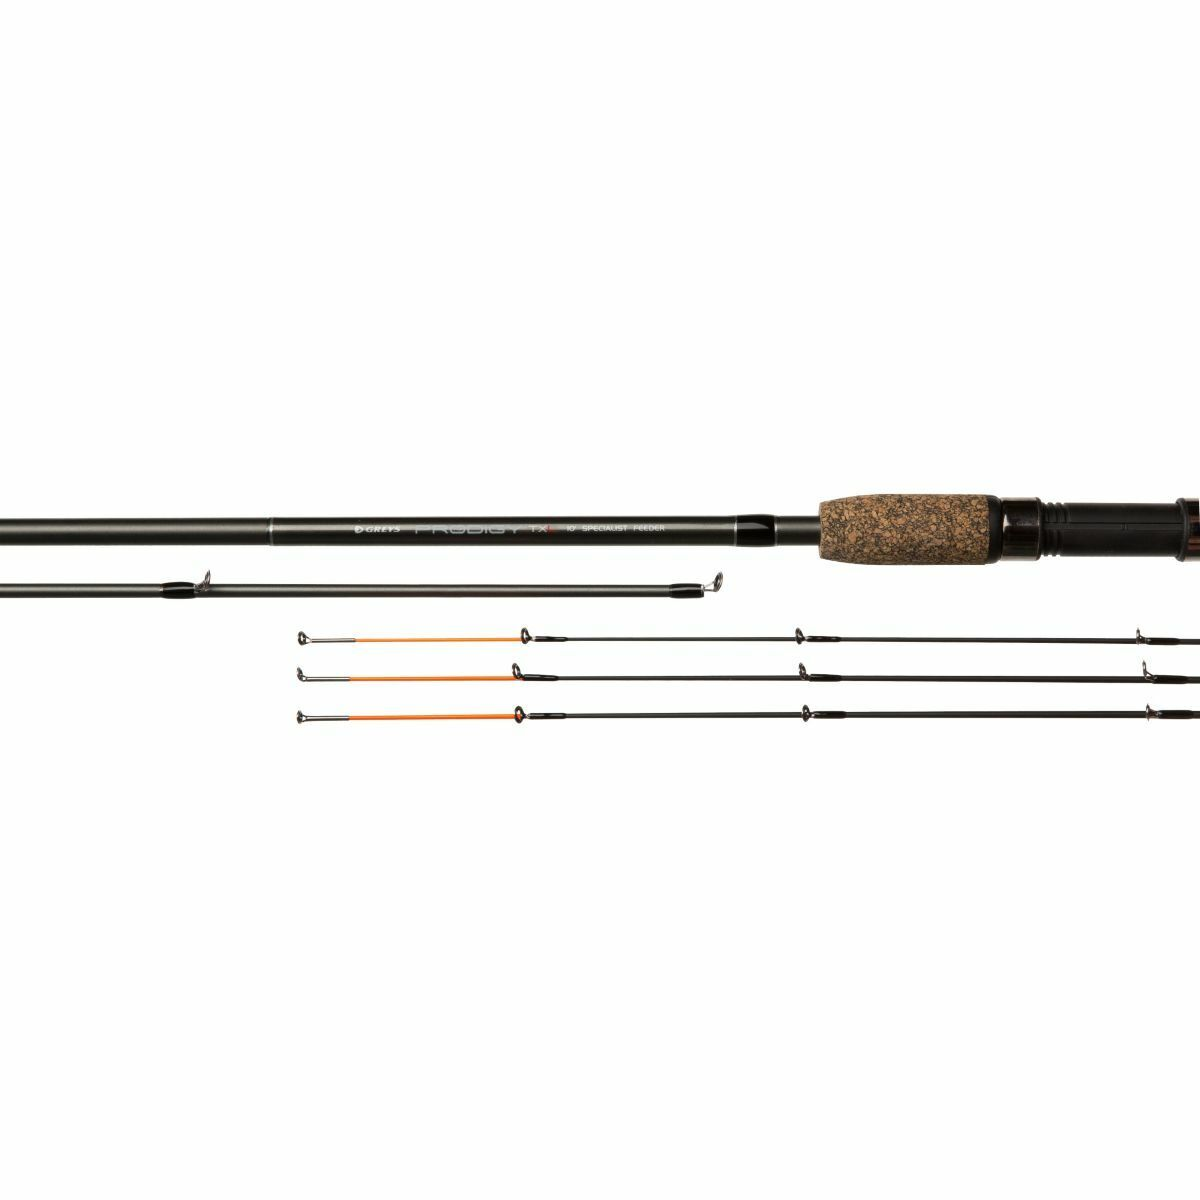 Canna da pesca feeder Greys Prodigy TXL ledgering carpa lago fiume e mare 12 ft